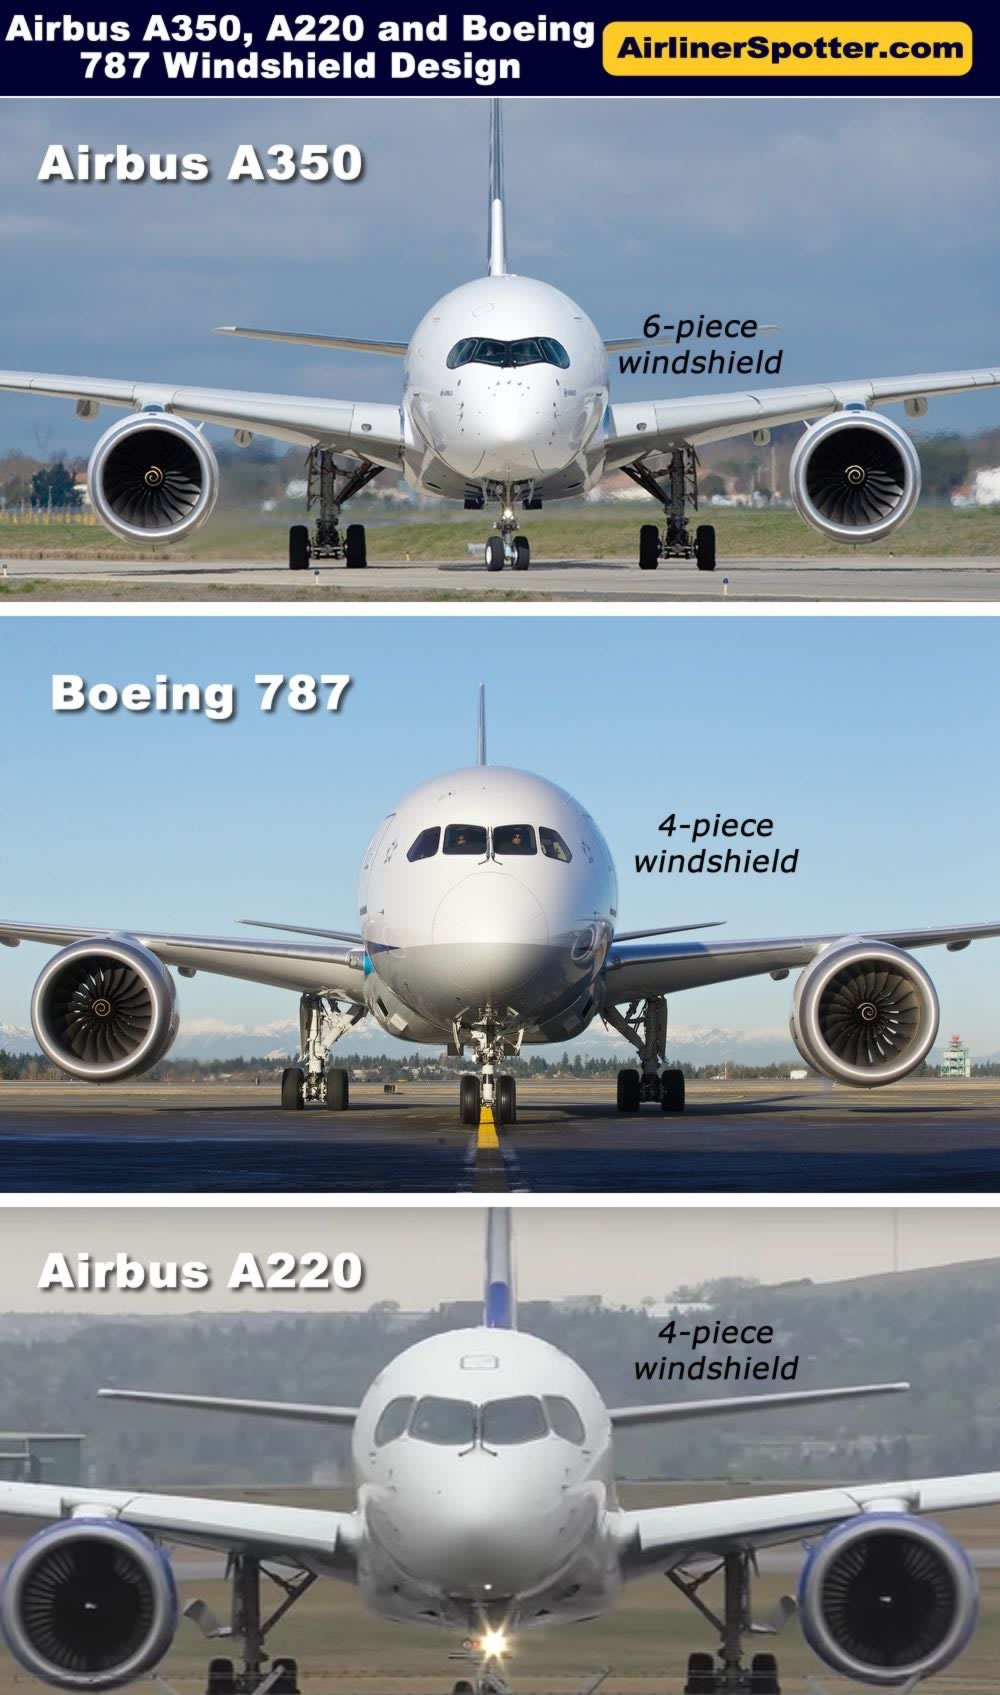 The different configurations of the cockpit windshield, seen from a front view, on the Airbus A350 with its 6-piece windshield, and Boeing 787 with its 4-piece windshield. Also shown is the windshield configuration of the Airbus A220.